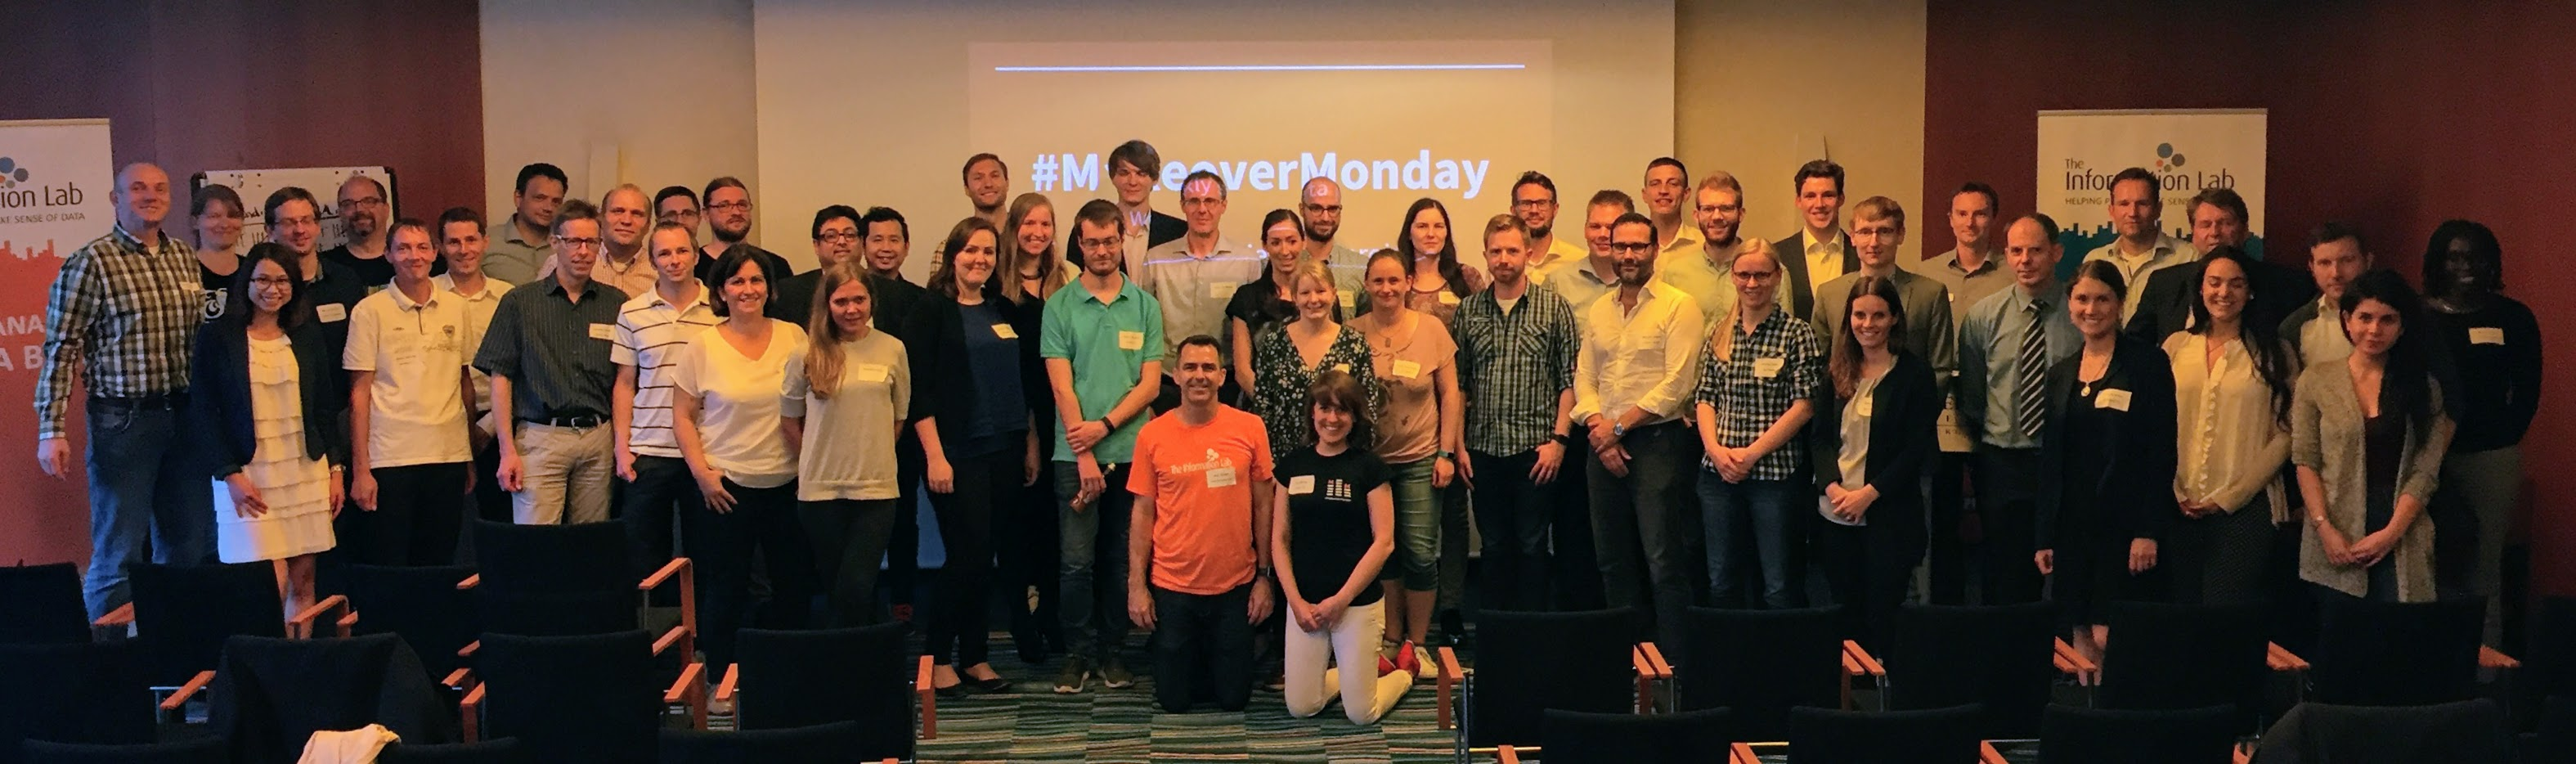 Recap: Makeover Monday Live in Hamburg